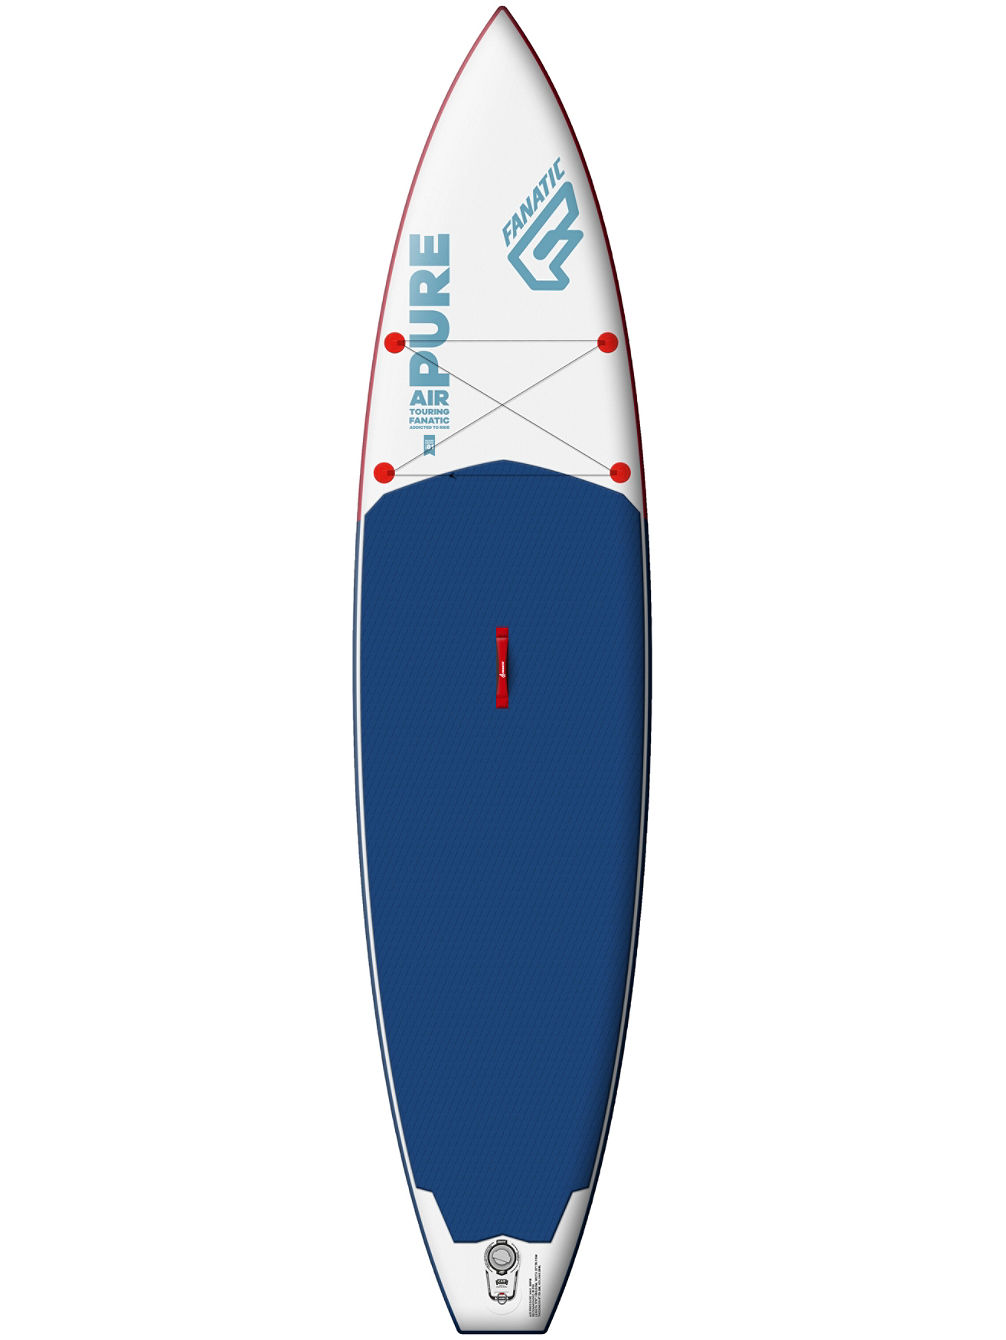 Pure Air Touring 11.6 SUP Board